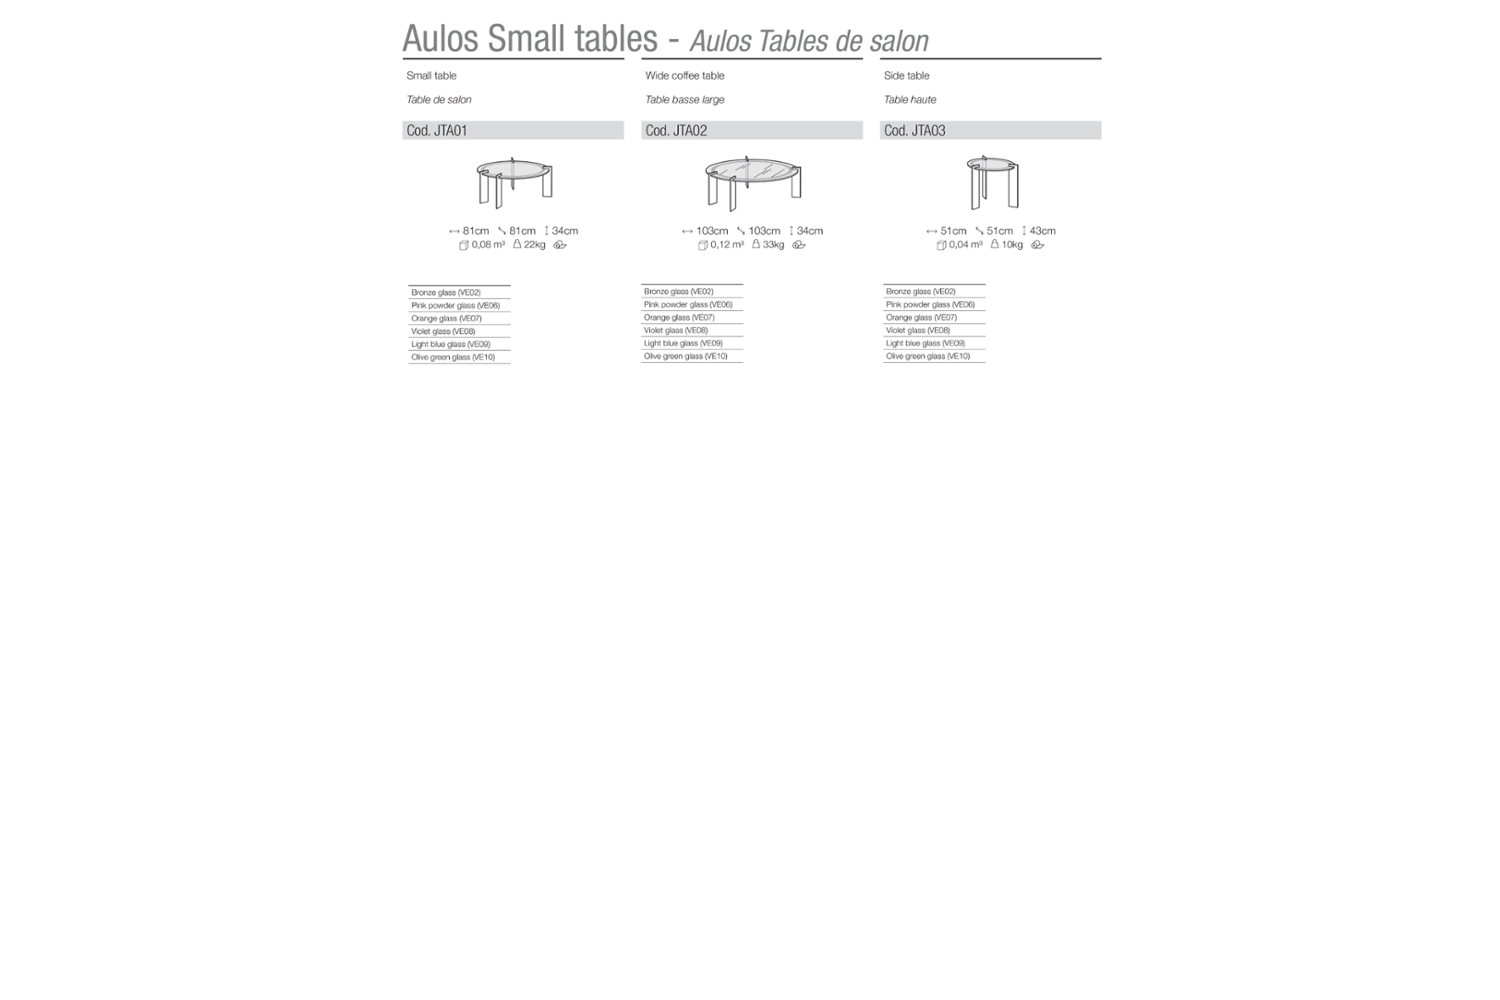 aulos SCHEMATIC aulos SCHEMATIC.png DITRE ITALIA DINING COFFEE TABLE SOFA